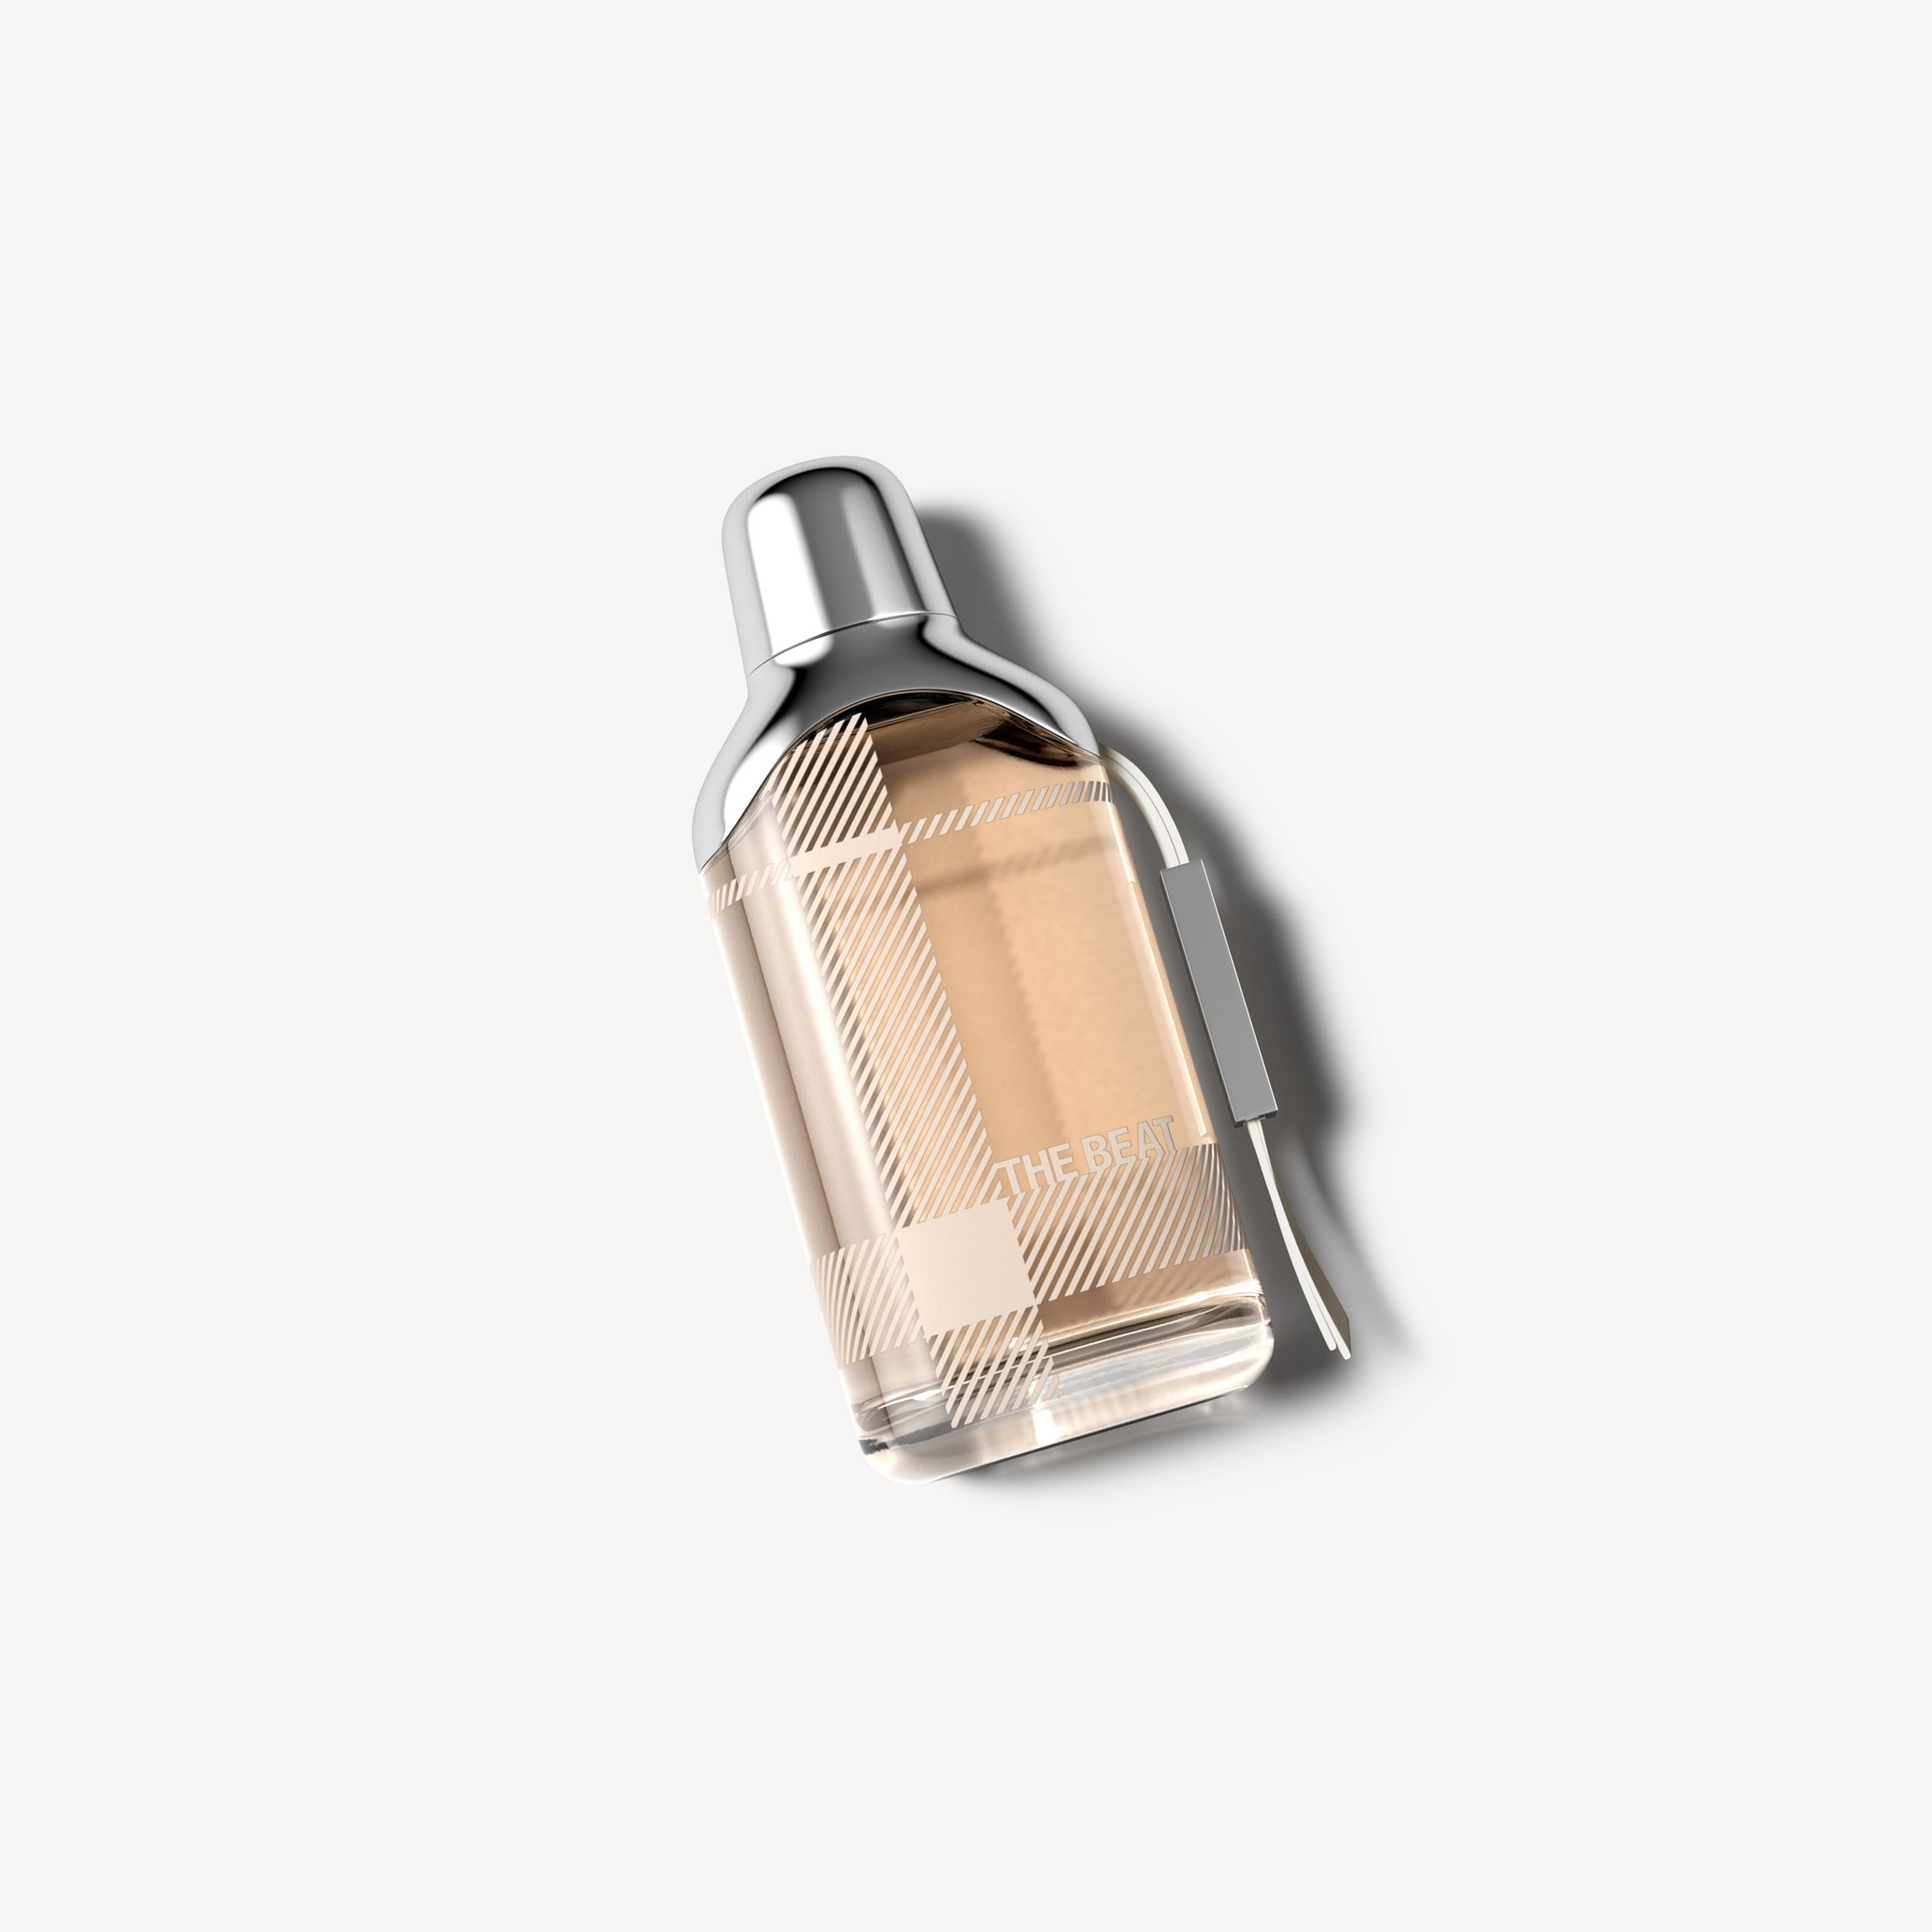 Burberry The Beat Eau de Parfum 50ml - Women | Burberry - 1